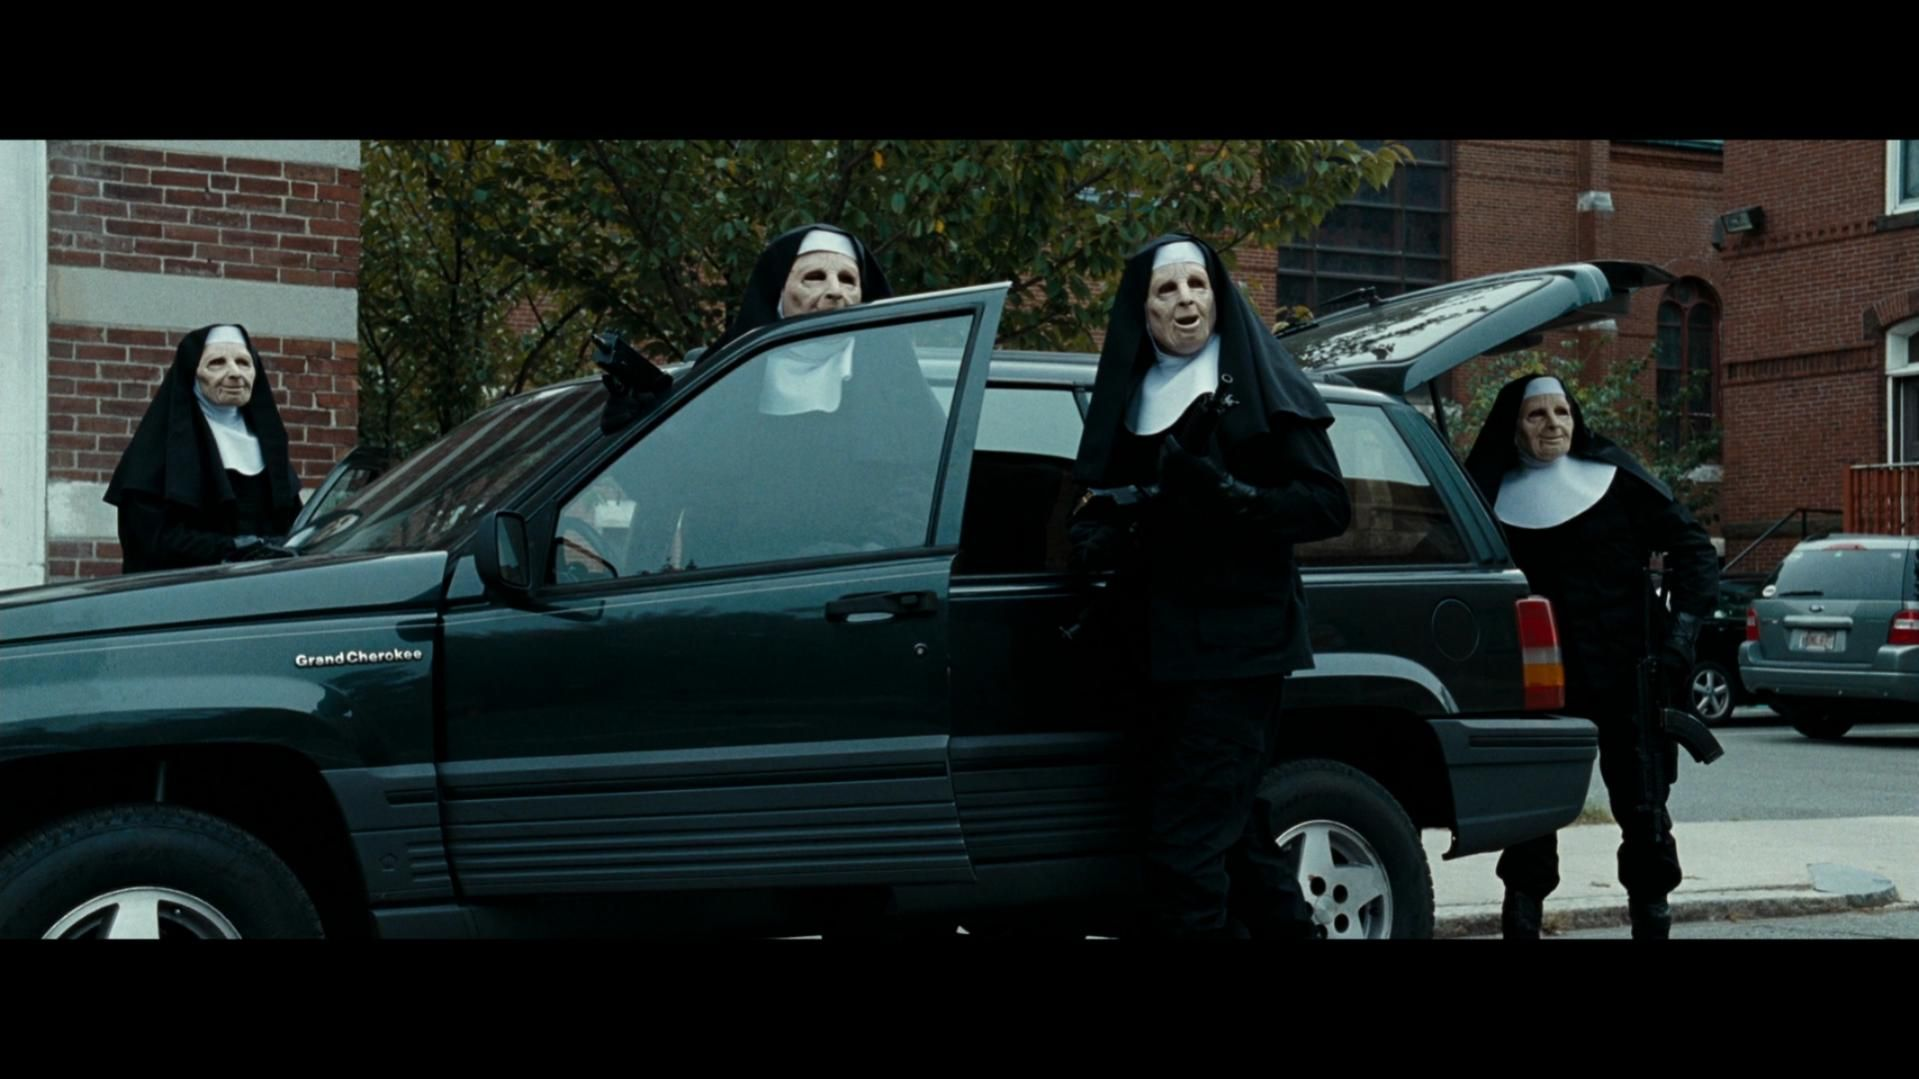 Nuns Heist The Town The Town Movie Movies Scary Art